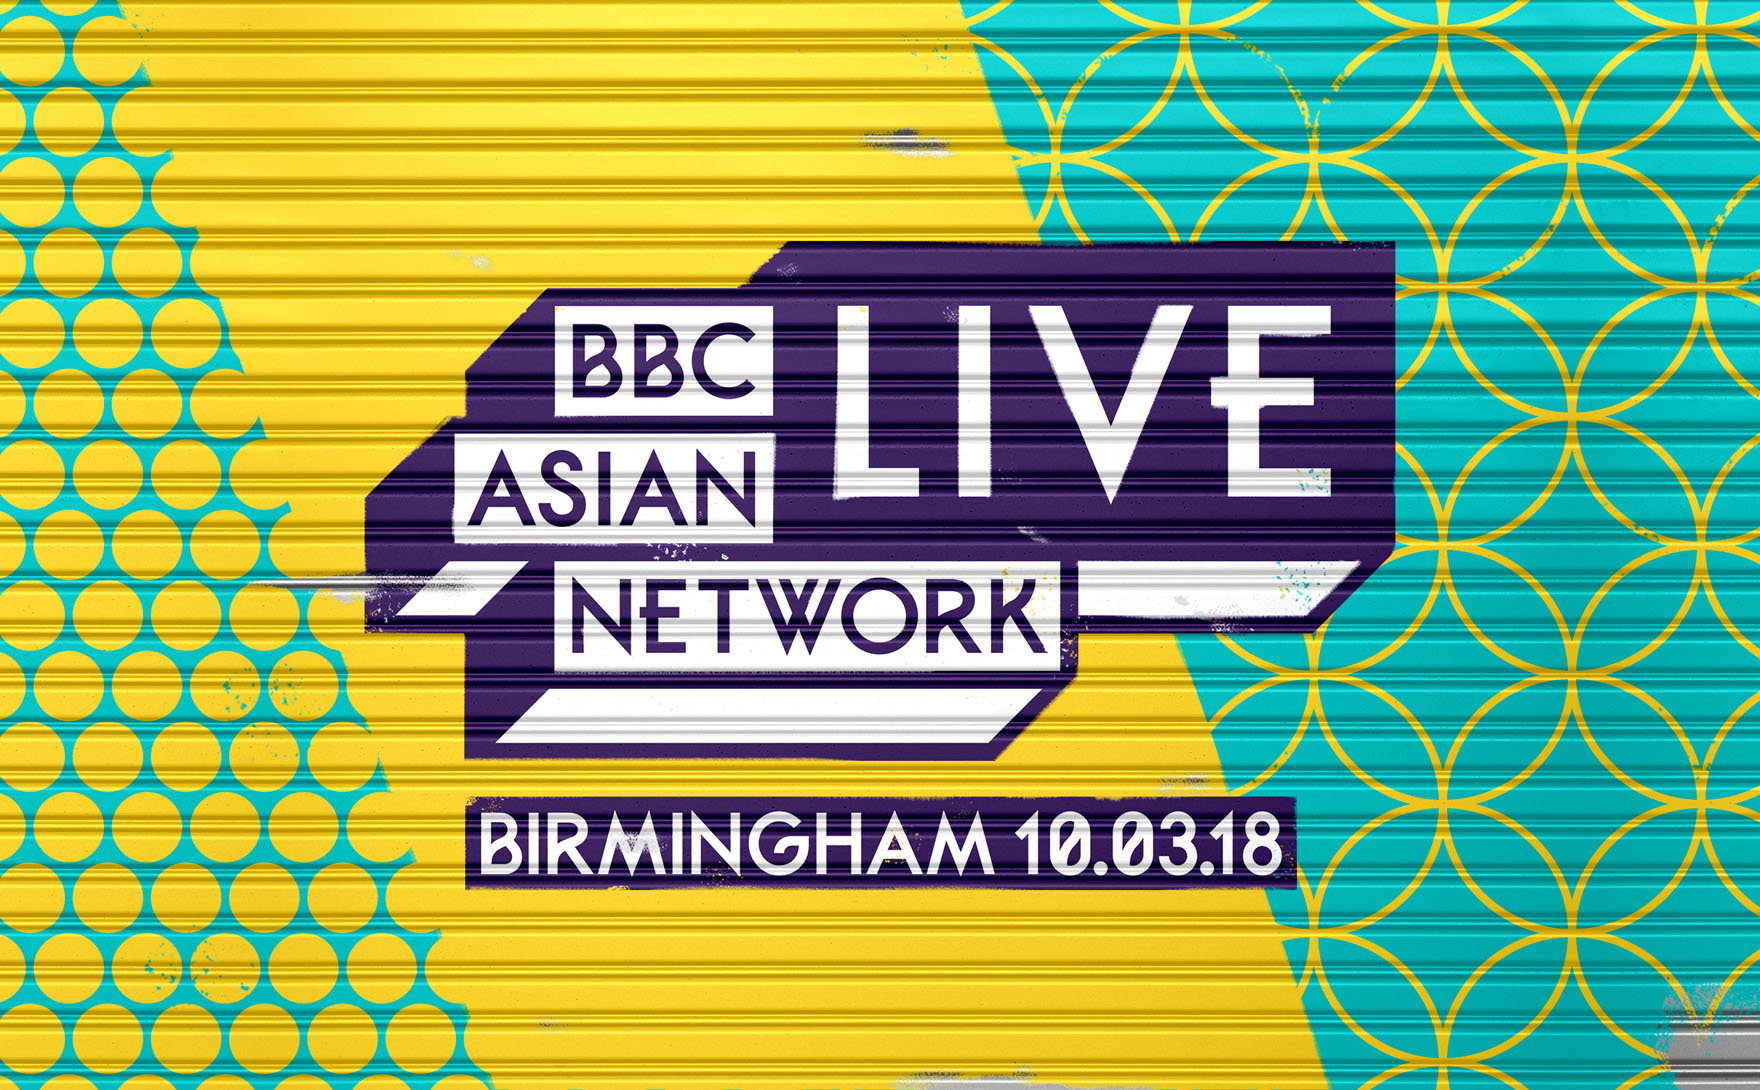 The event was triple-cast live across the BBC's youth radio stations — Asian  Network, Radio 1 and 1Xtra, along with a live video stream on BBC iPlayer.